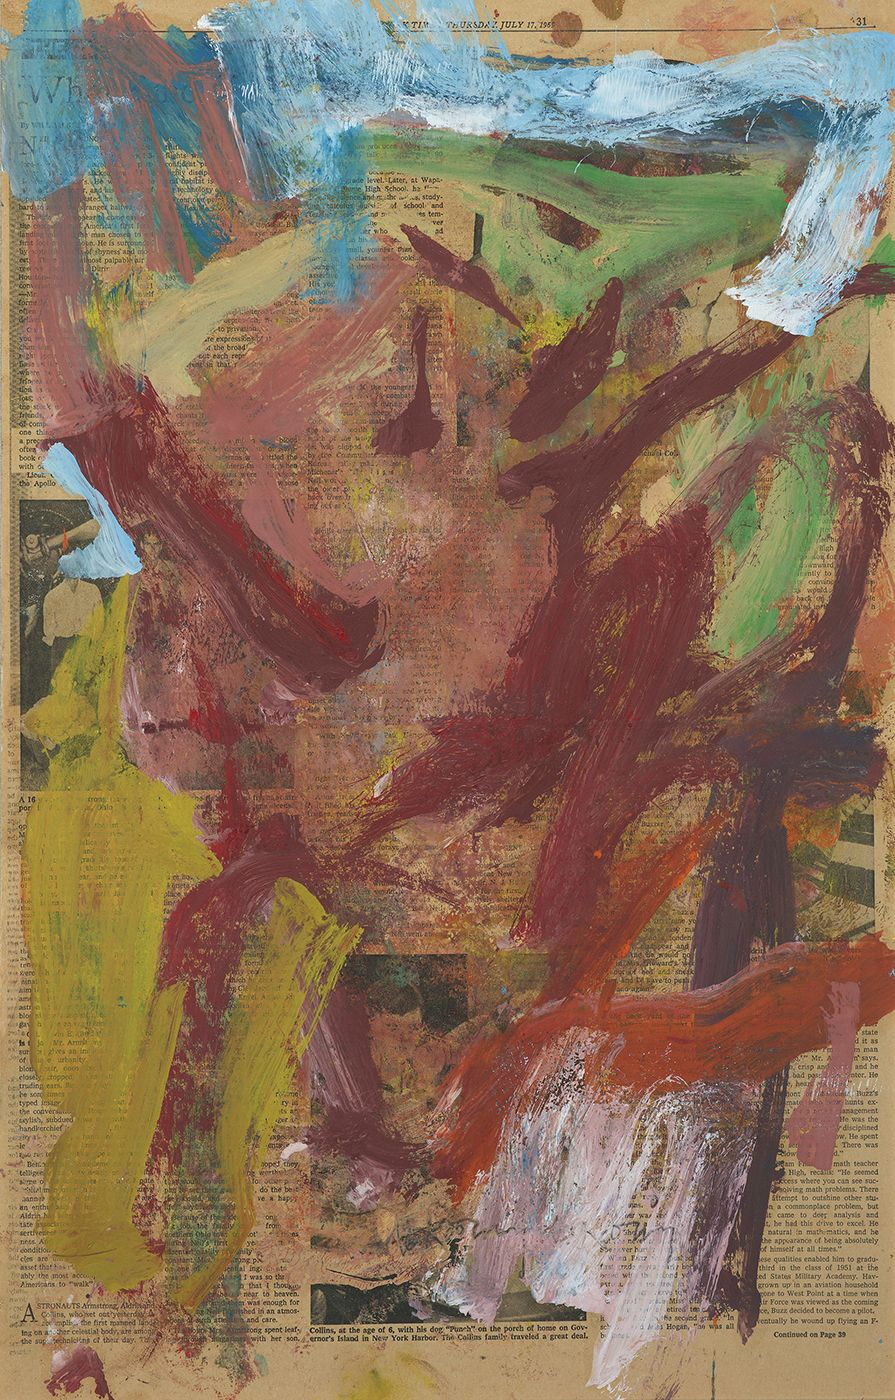 Willem de Kooning, Thursday July 17, 1969,  Oil on Newspaper,  23 x 14 1/2 inches, Abstract piece with muted color marks over a newspaper page. Willem de Kooning was one of the largest Abstract Expressionist painters who focused on gestural movement, Cubism, Surrealism and Expressionism.